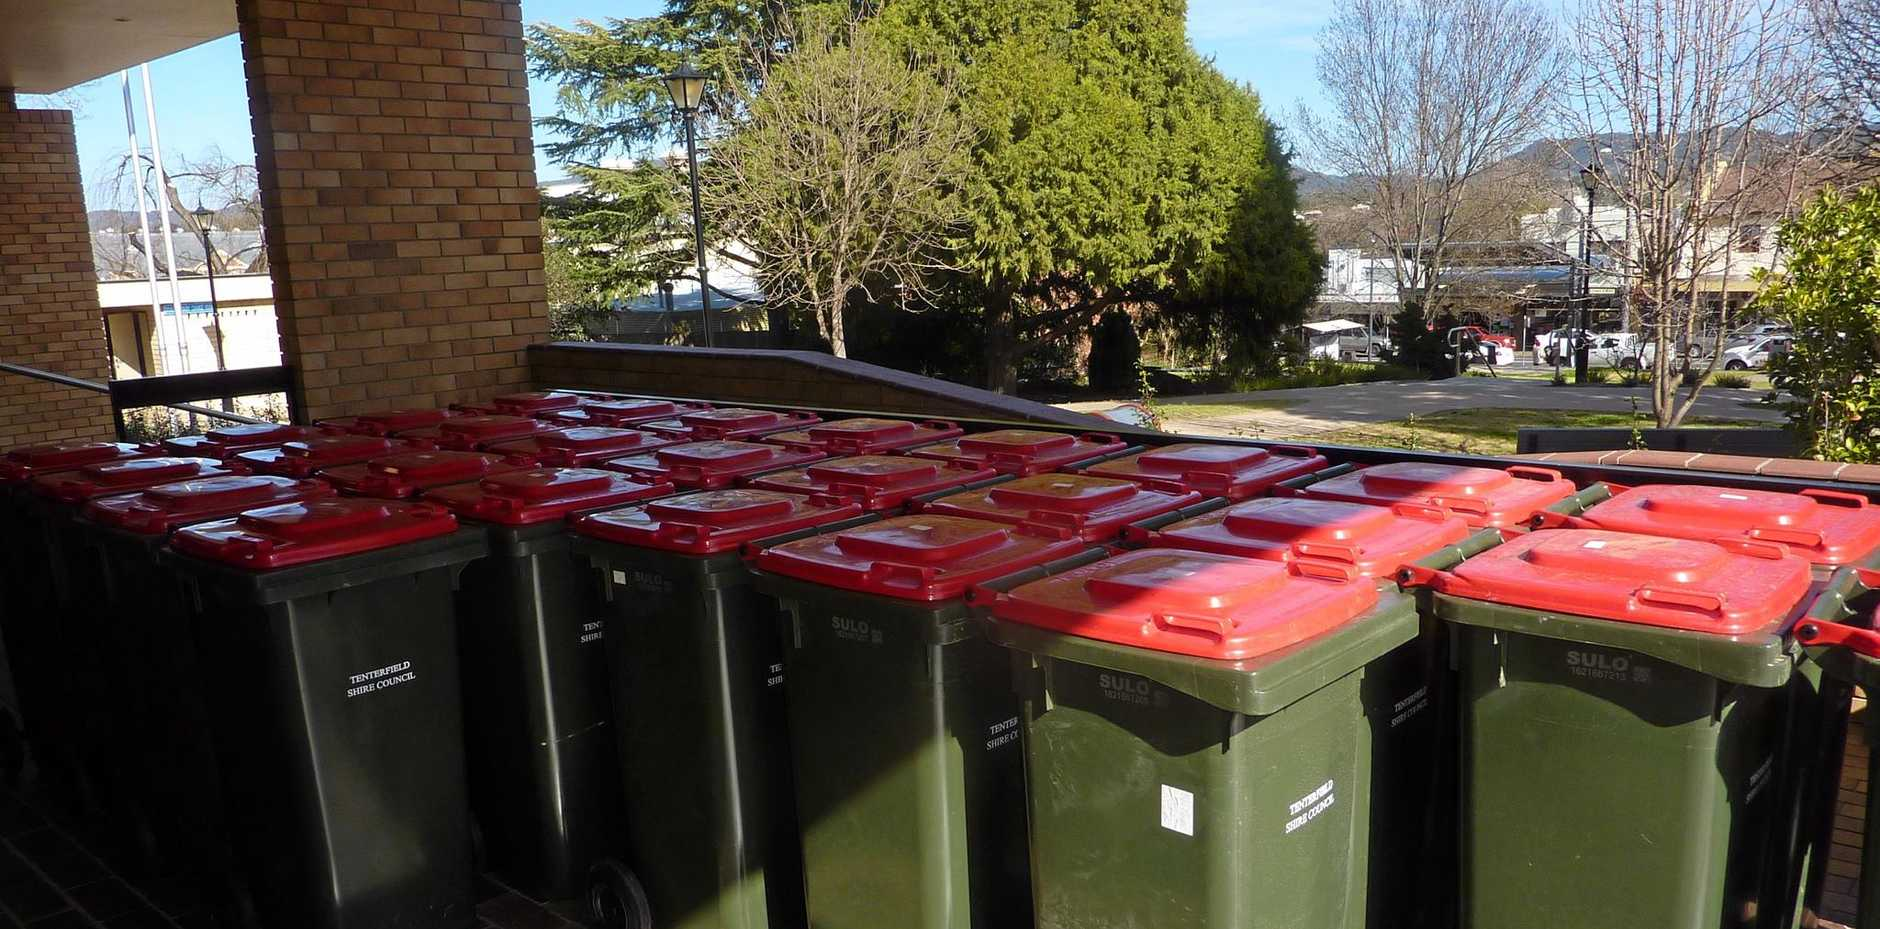 BIG LOAD: The first load of 27 bins left at Tenterfield Shire Council offices by Liston residents.